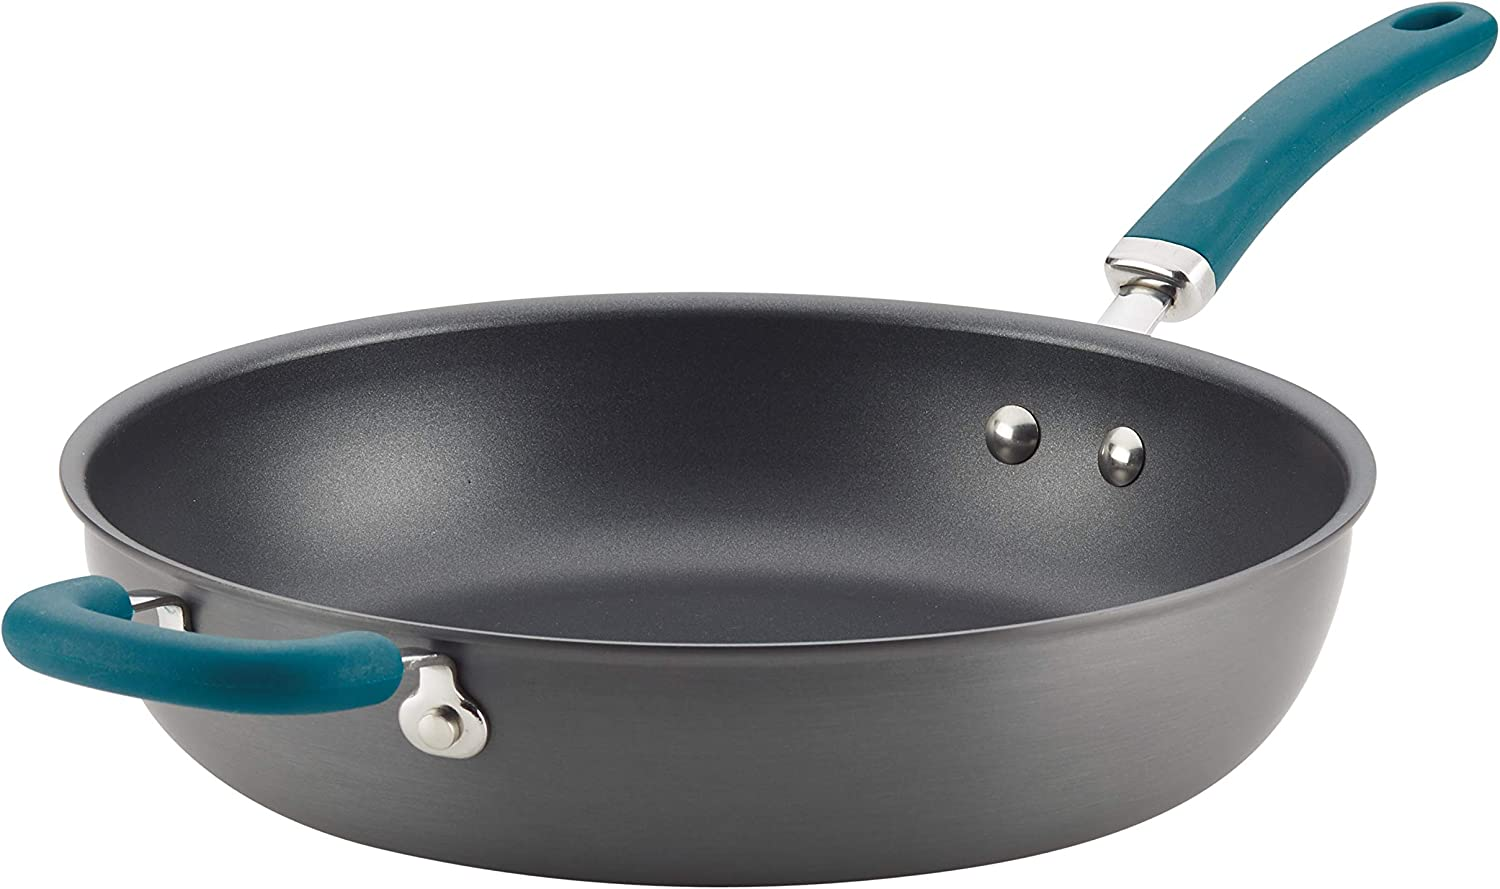 Rachael Ray 81130 Create Delicious Deep Hard Anodized Nonstick Frying Pan / Fry Pan / Hard Anodized Skillet - 12.5 Inch, Gray